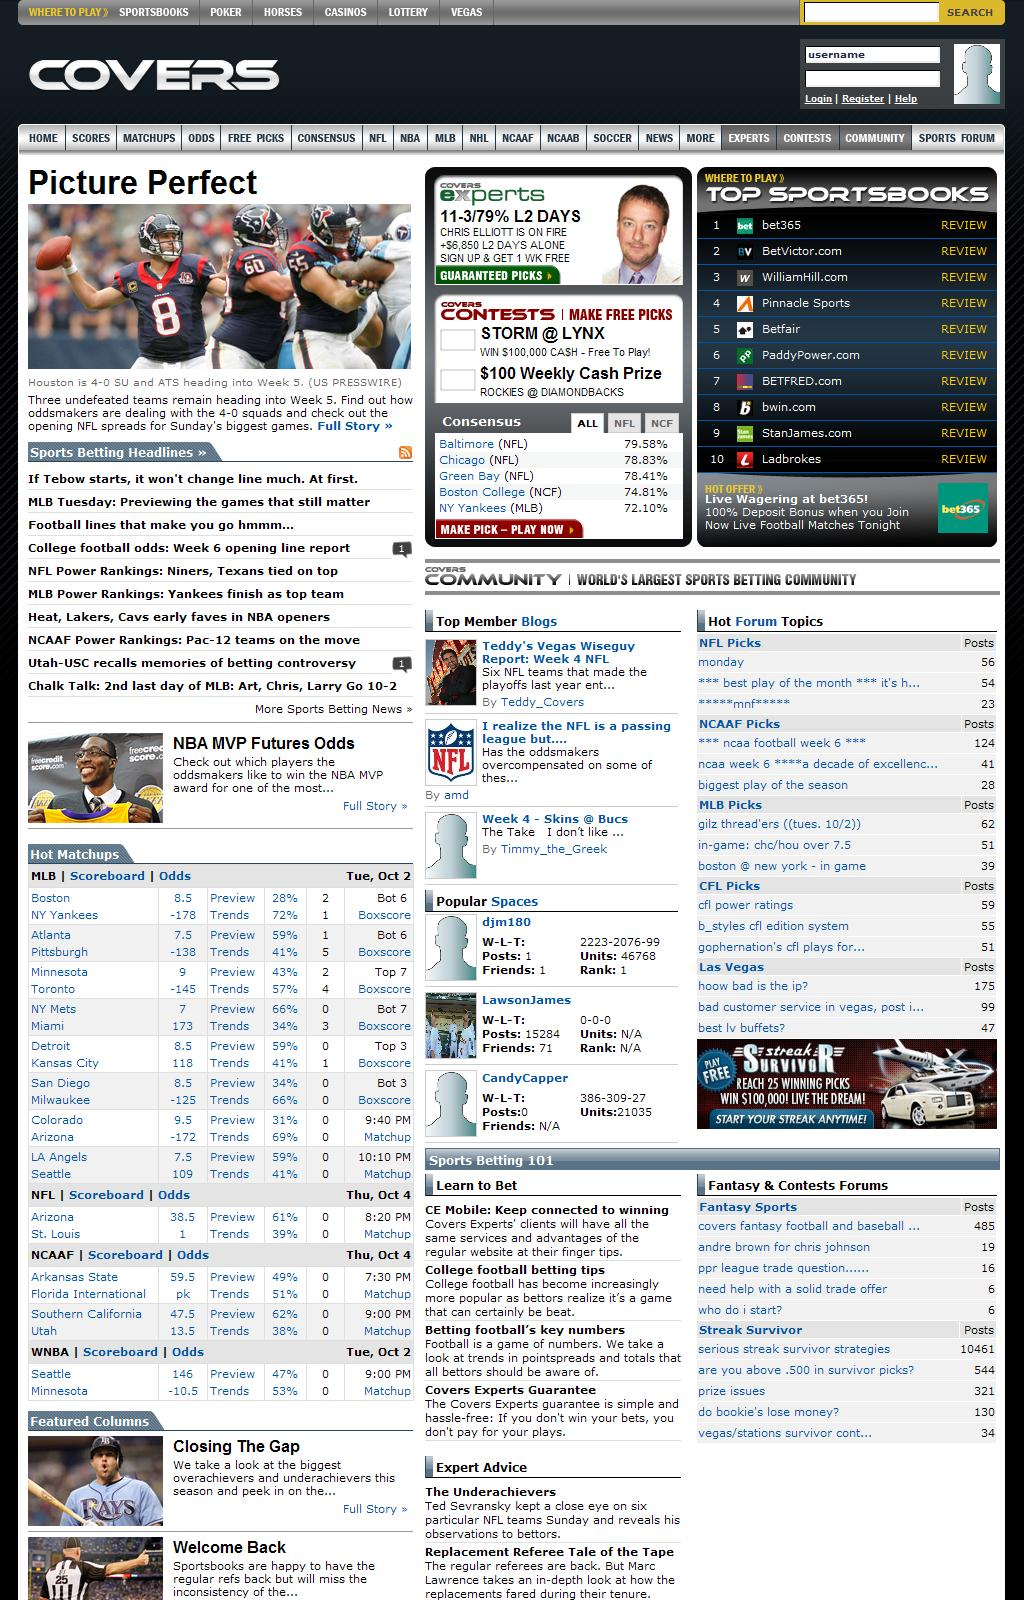 "Sports Betting Odds, Picks and Statistics â€"" Covers.com"